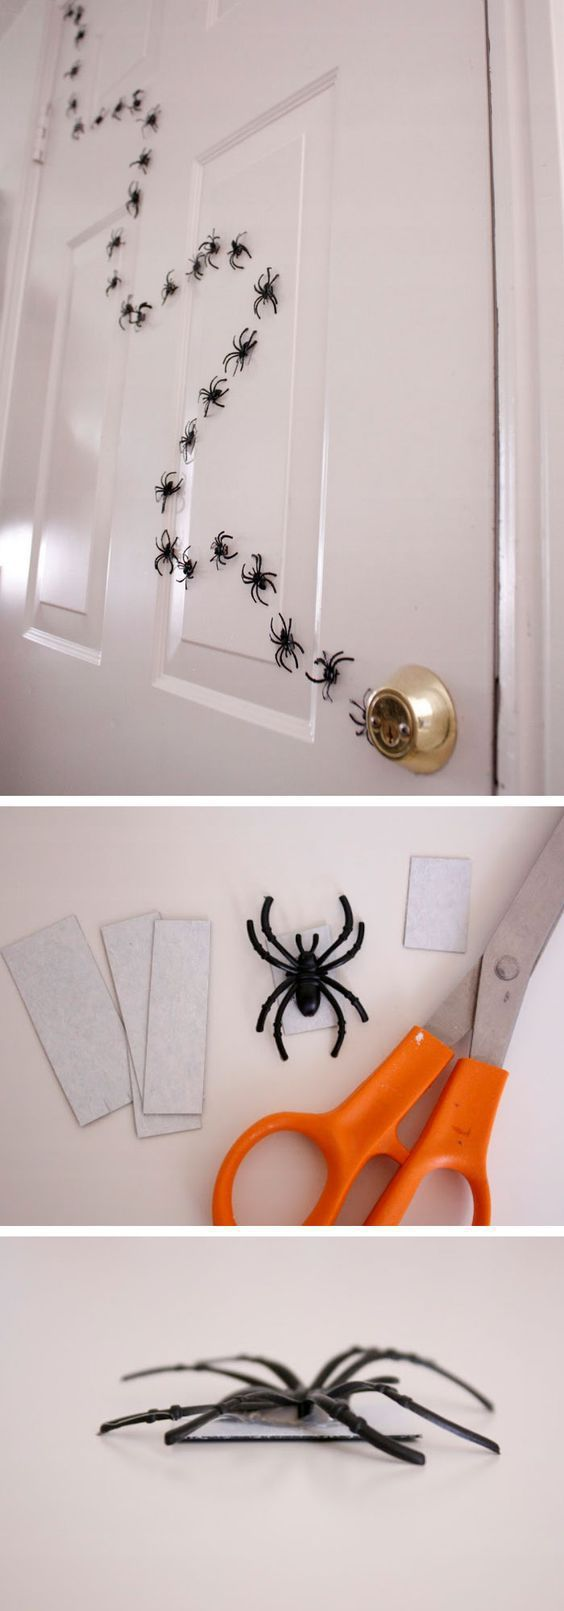 Halloween spider decorations - Easy And Cheap Magnetic Halloween Spiders Decorations Delia Creates Spooktacular Halloween Diys Crafts